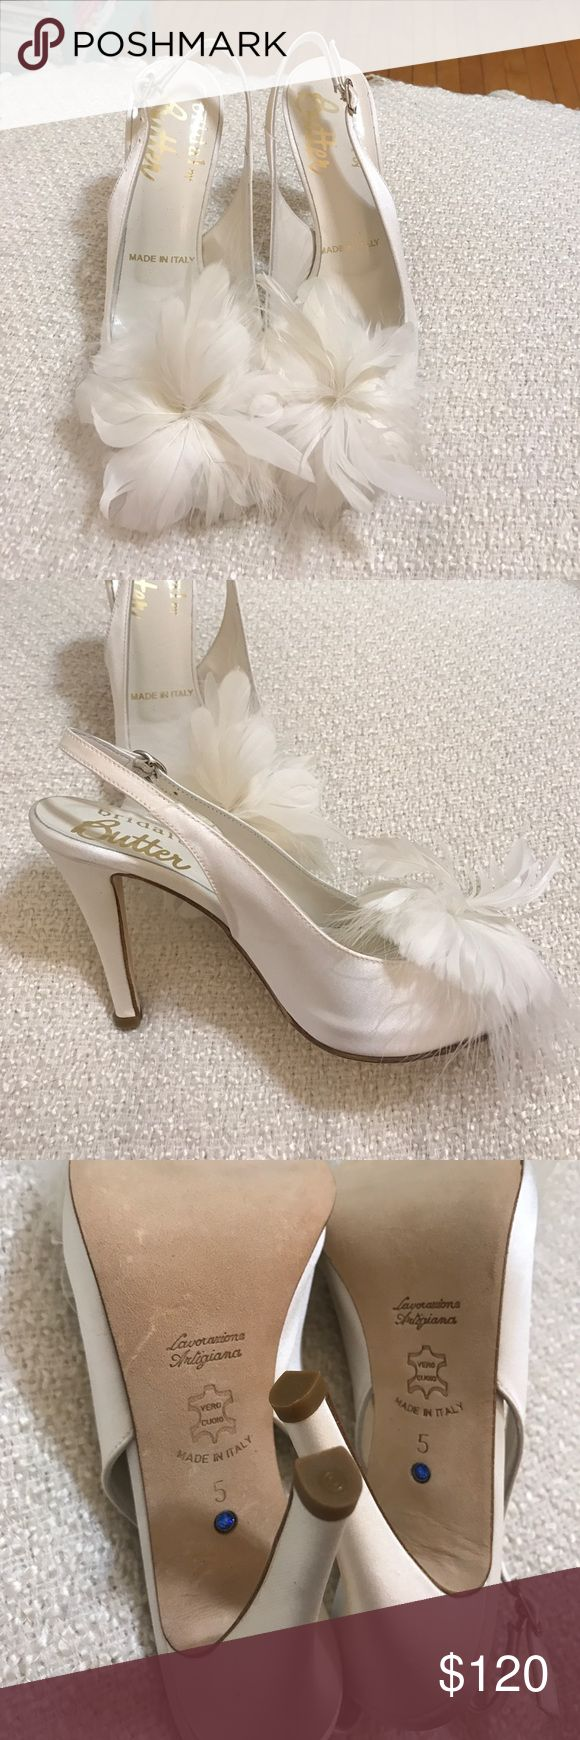 Butter Bridal Wedding Shoes Gorgeous! Perfect wedding shoes. Ivory satin and leather sole and insole. Brand New! Made in Italy! Very unique shoes perfect for a very unique bride. :) Butter Shoes Shoes Heels